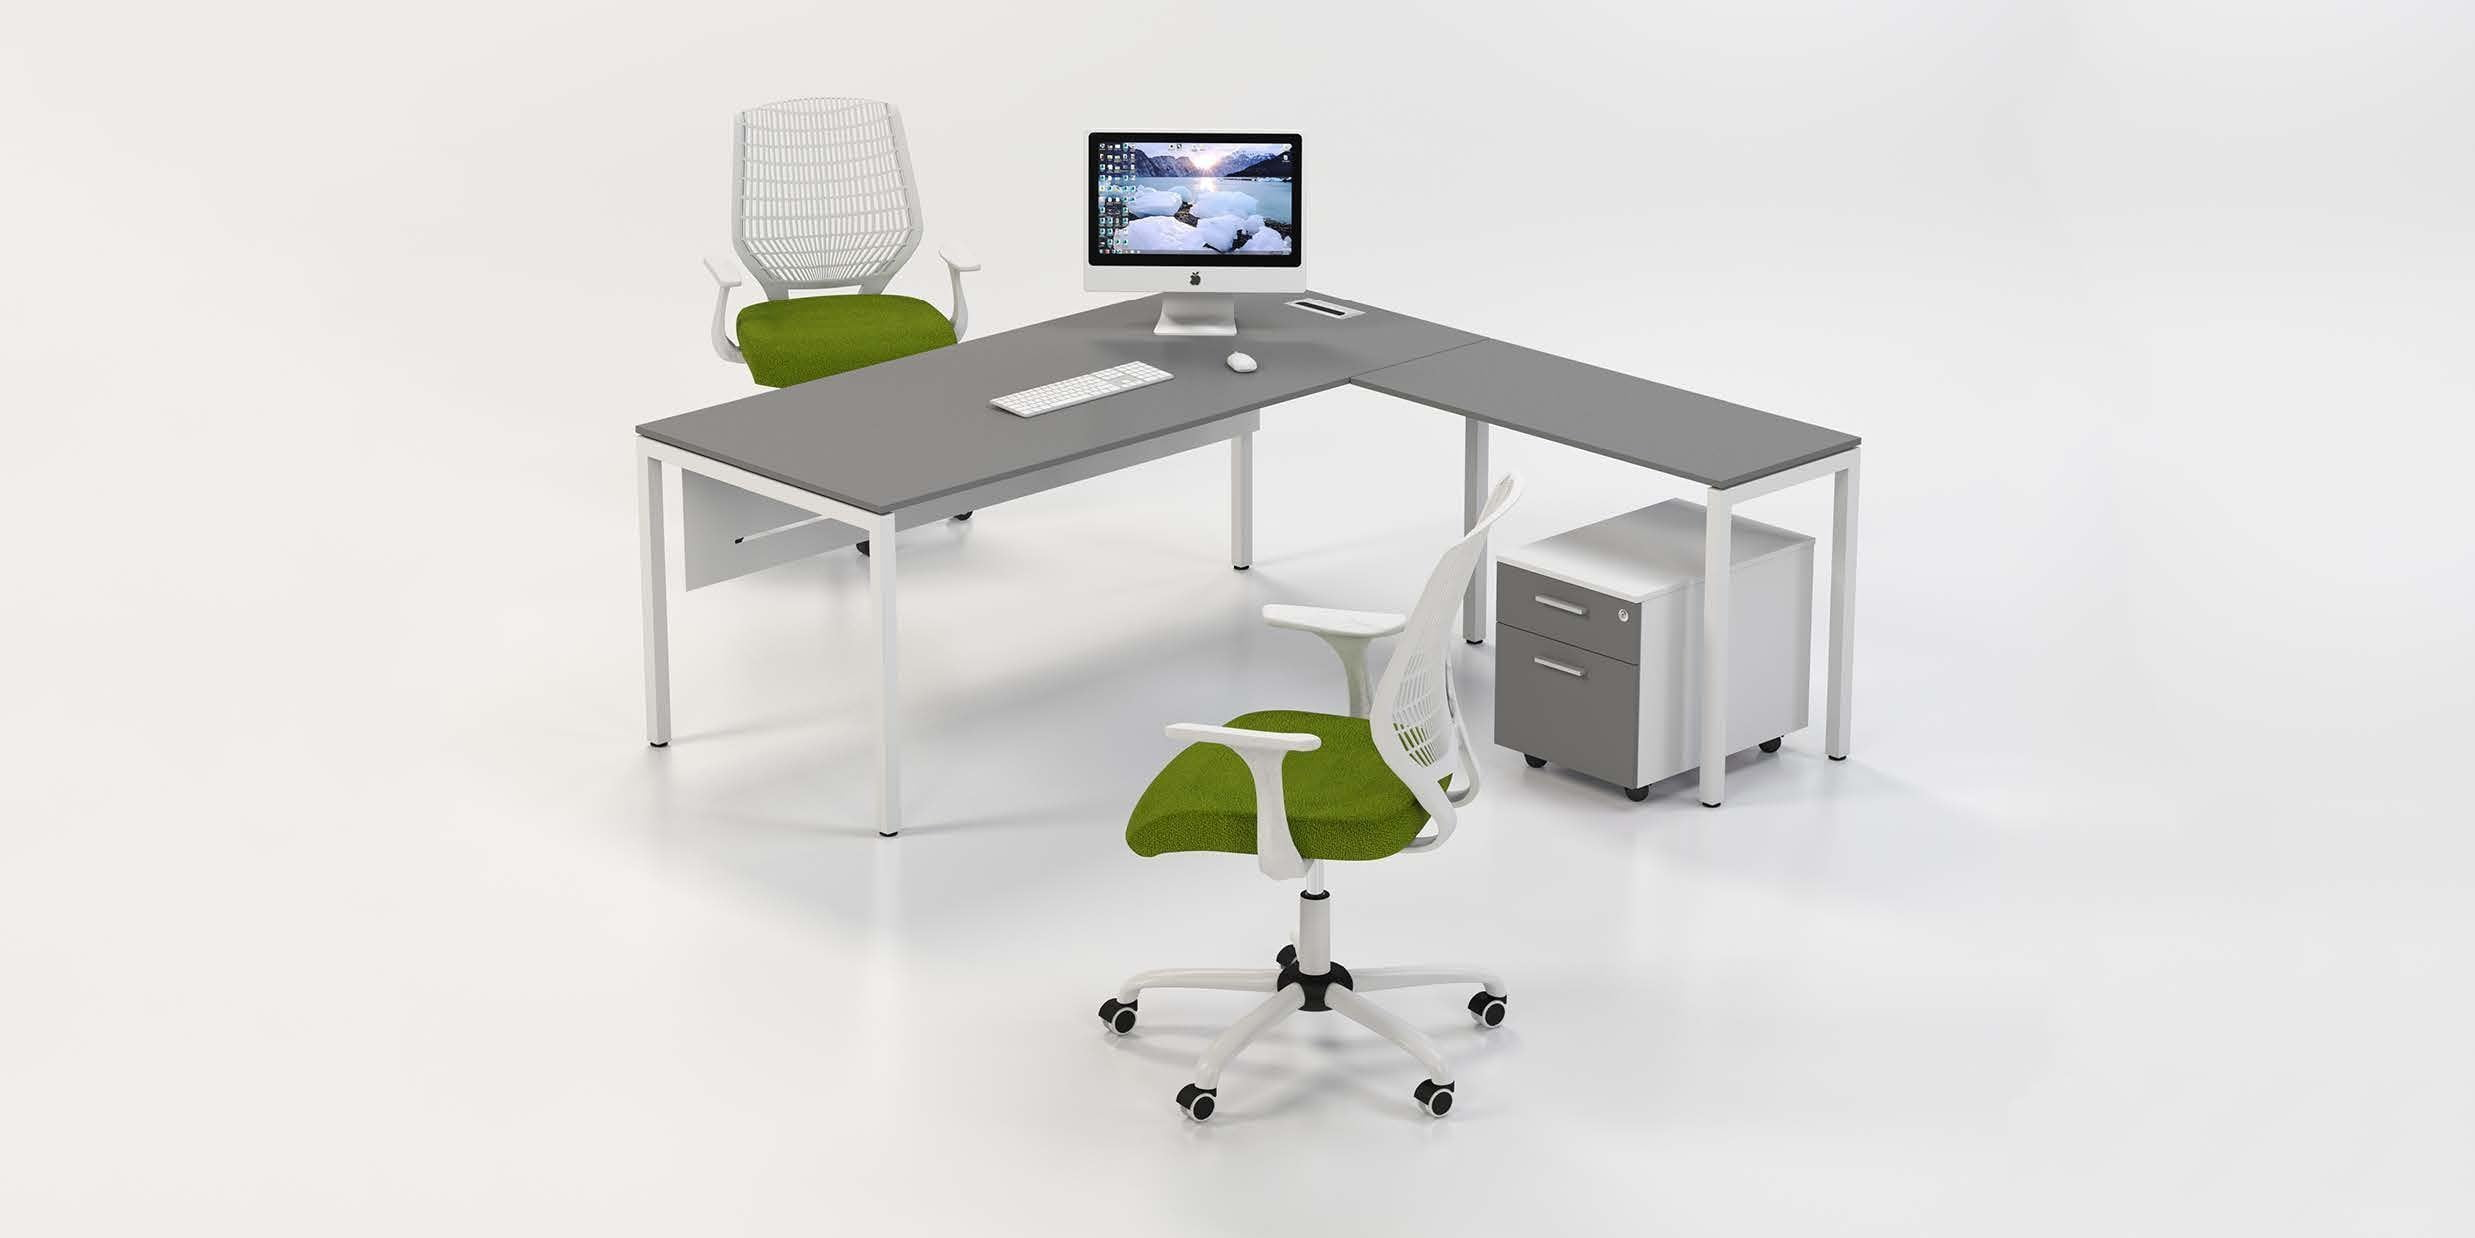 <h2>38<sup>2</sup> Benching System managerial meeting table and personal assistant</h2>